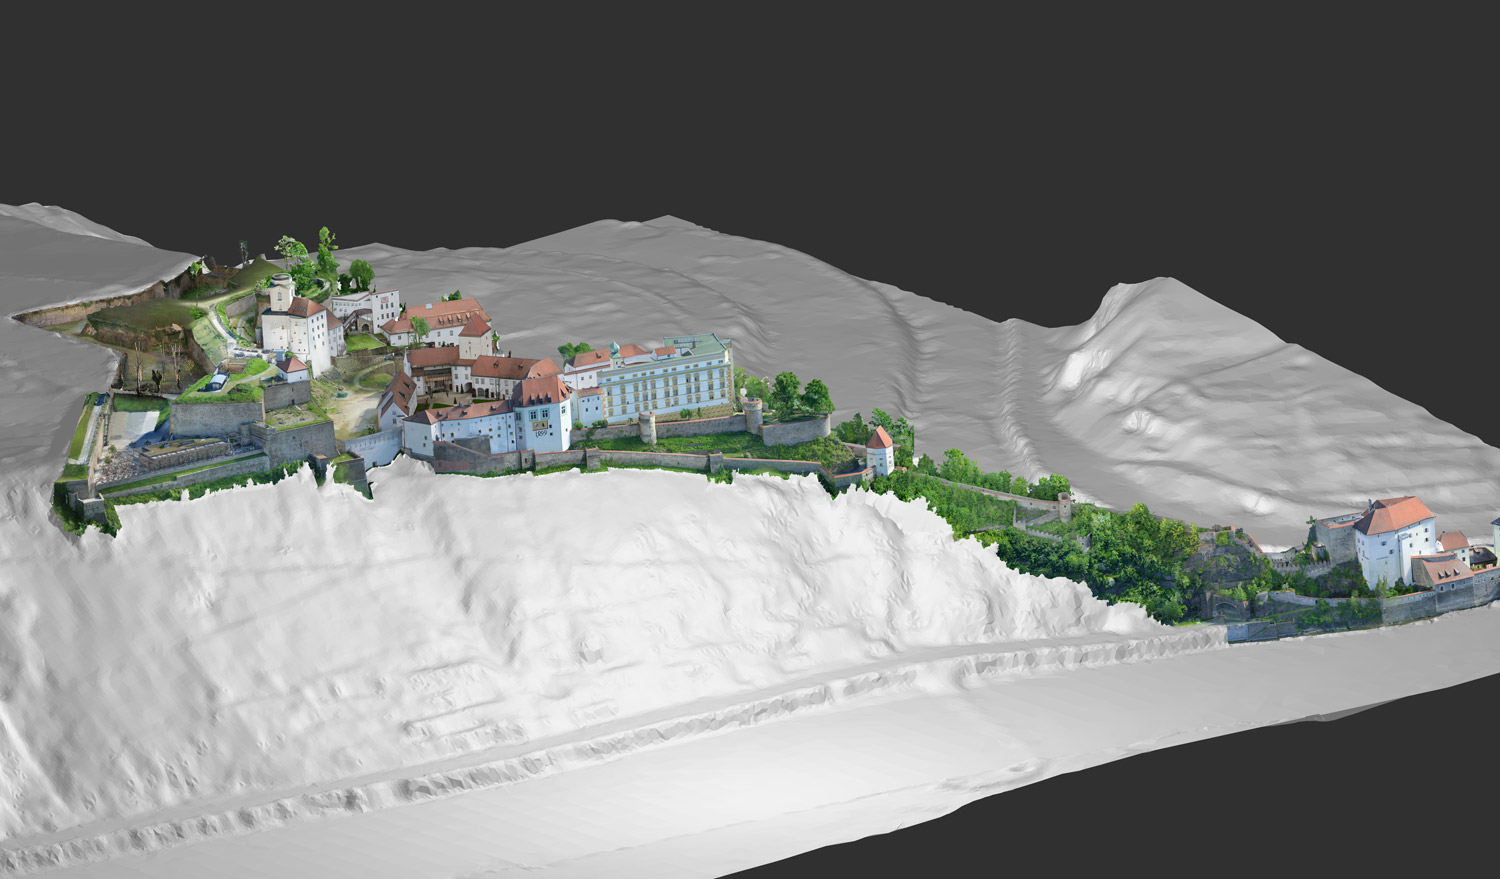 3D survey of the fortress with its very extensive building stock incl. the surrounding terrain